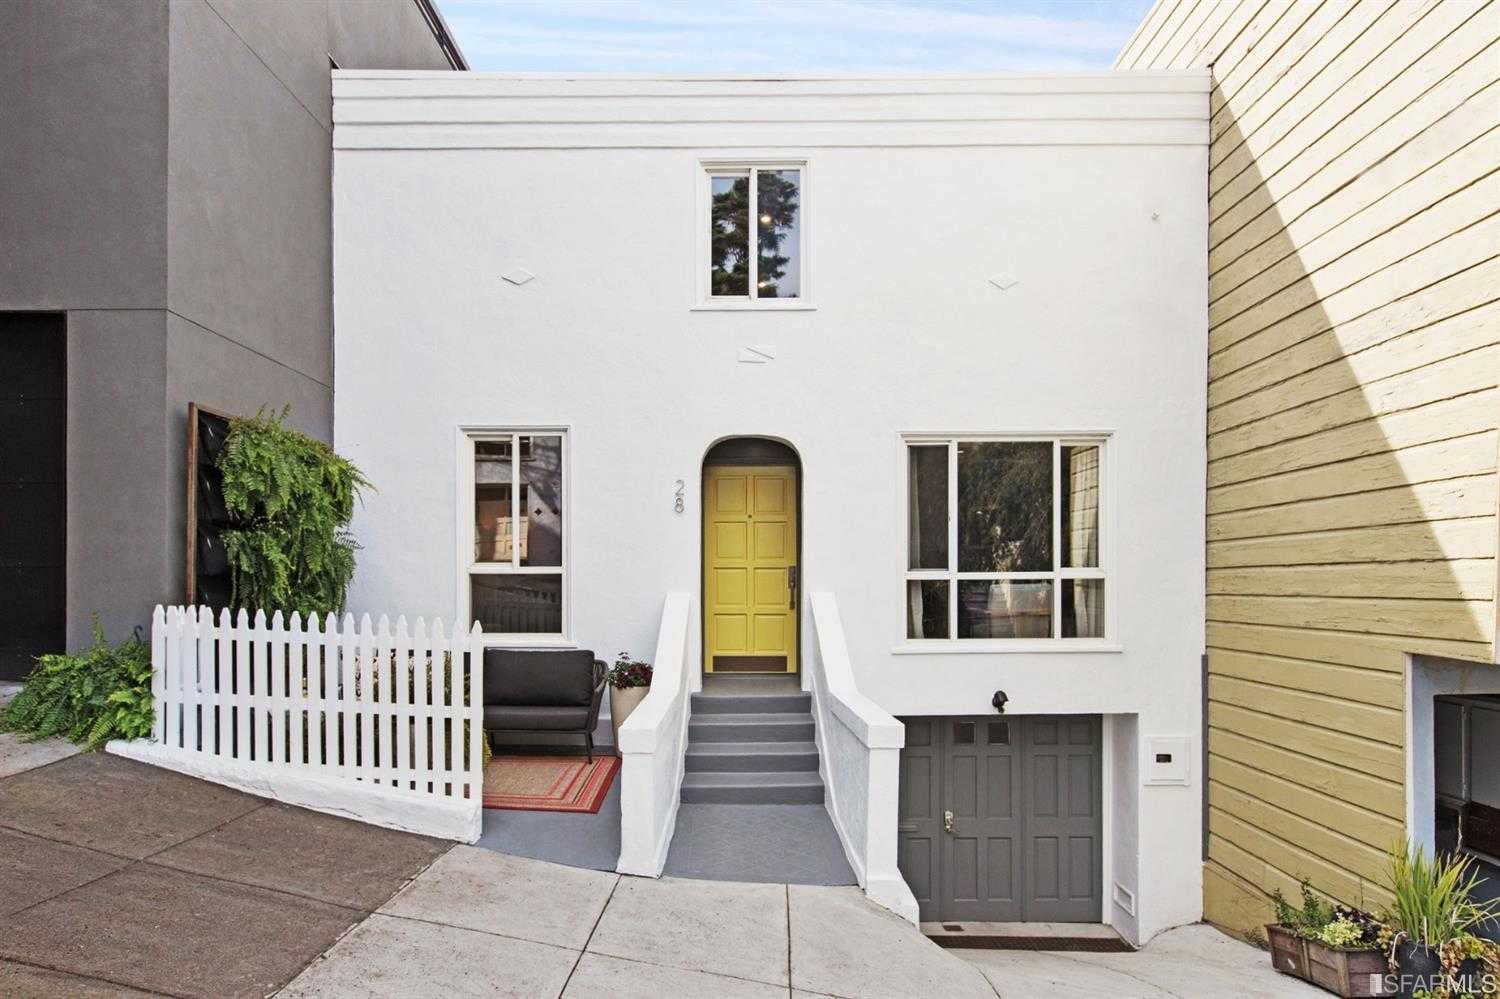 28 Winfield St San Francisco, CA 94110